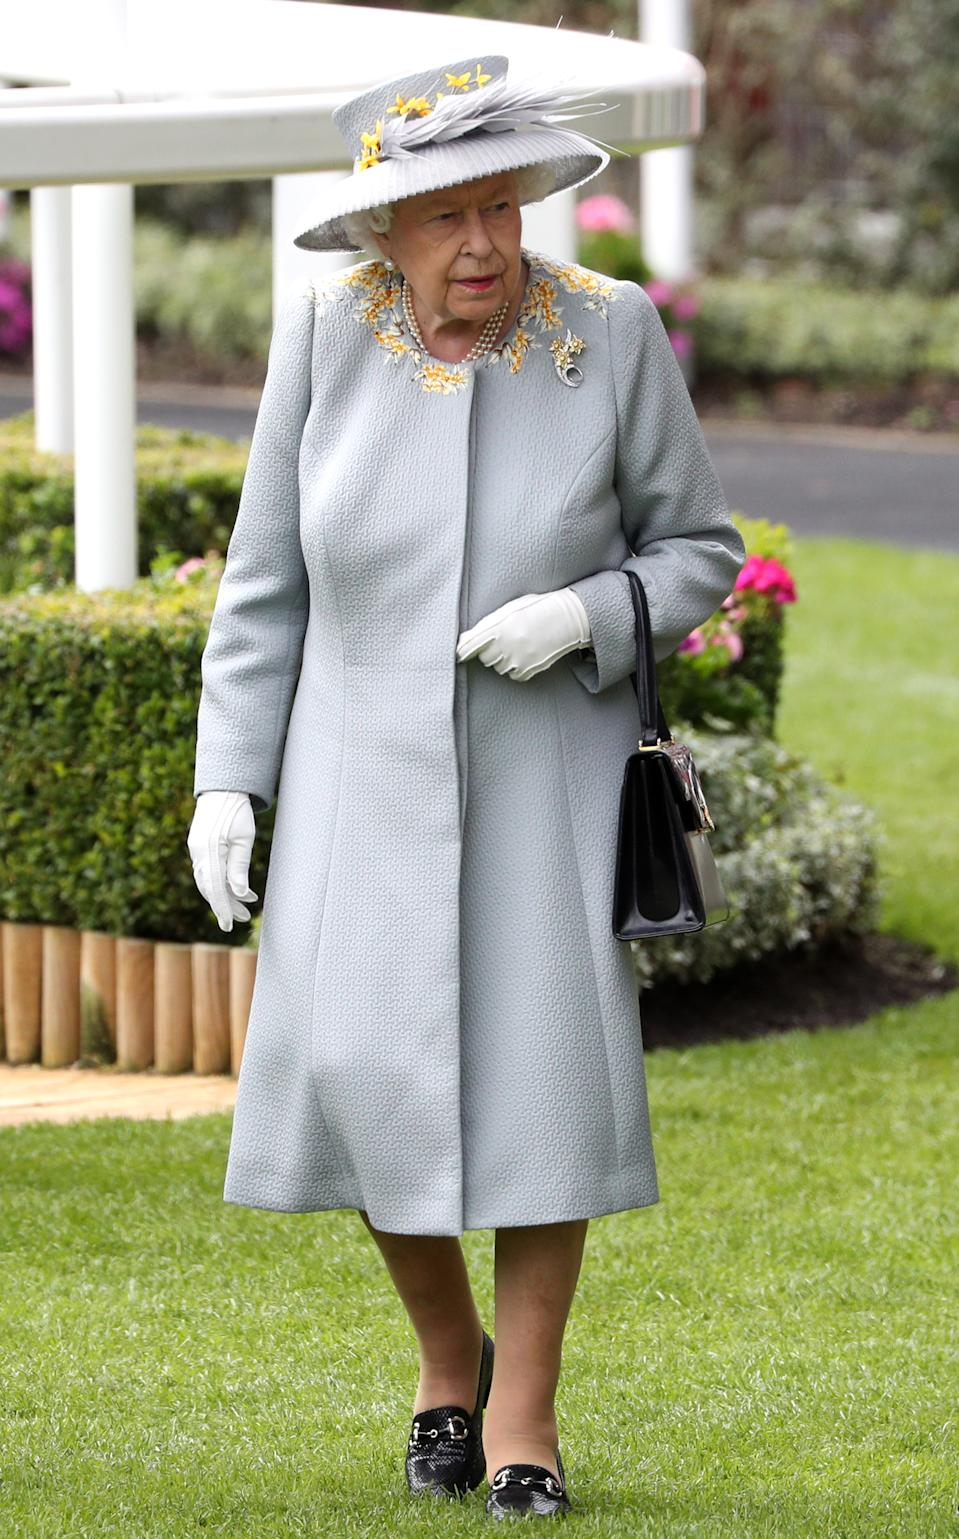 The Queen wore a metal grey coat and hat with yellow accents. <em>[Photo: PA]</em>